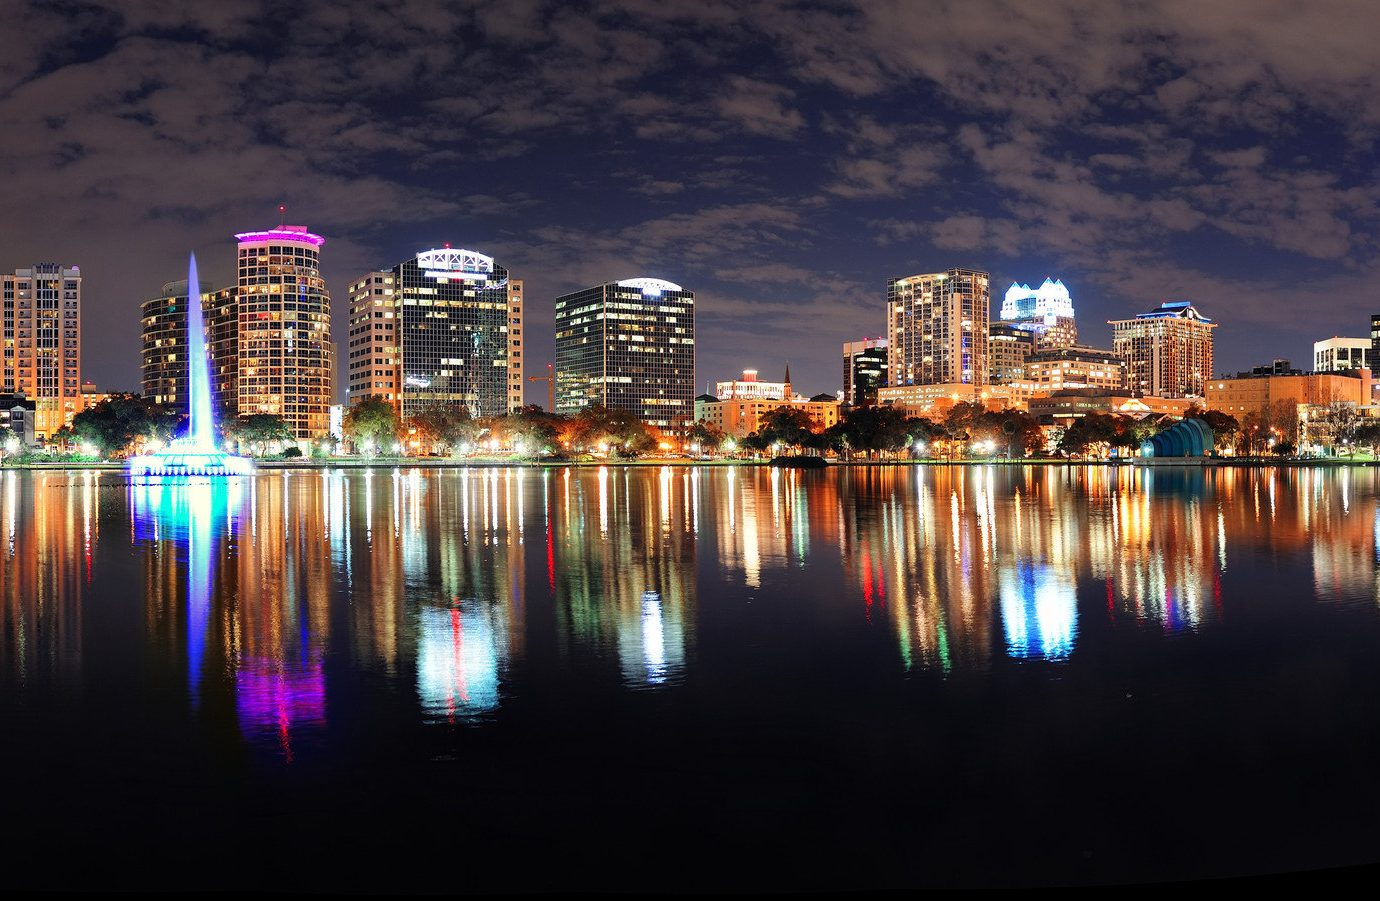 Budget water skyline reflection outdoor night City metropolis cityscape landmark skyscraper human settlement urban area evening dusk Downtown Harbor colorful several colored